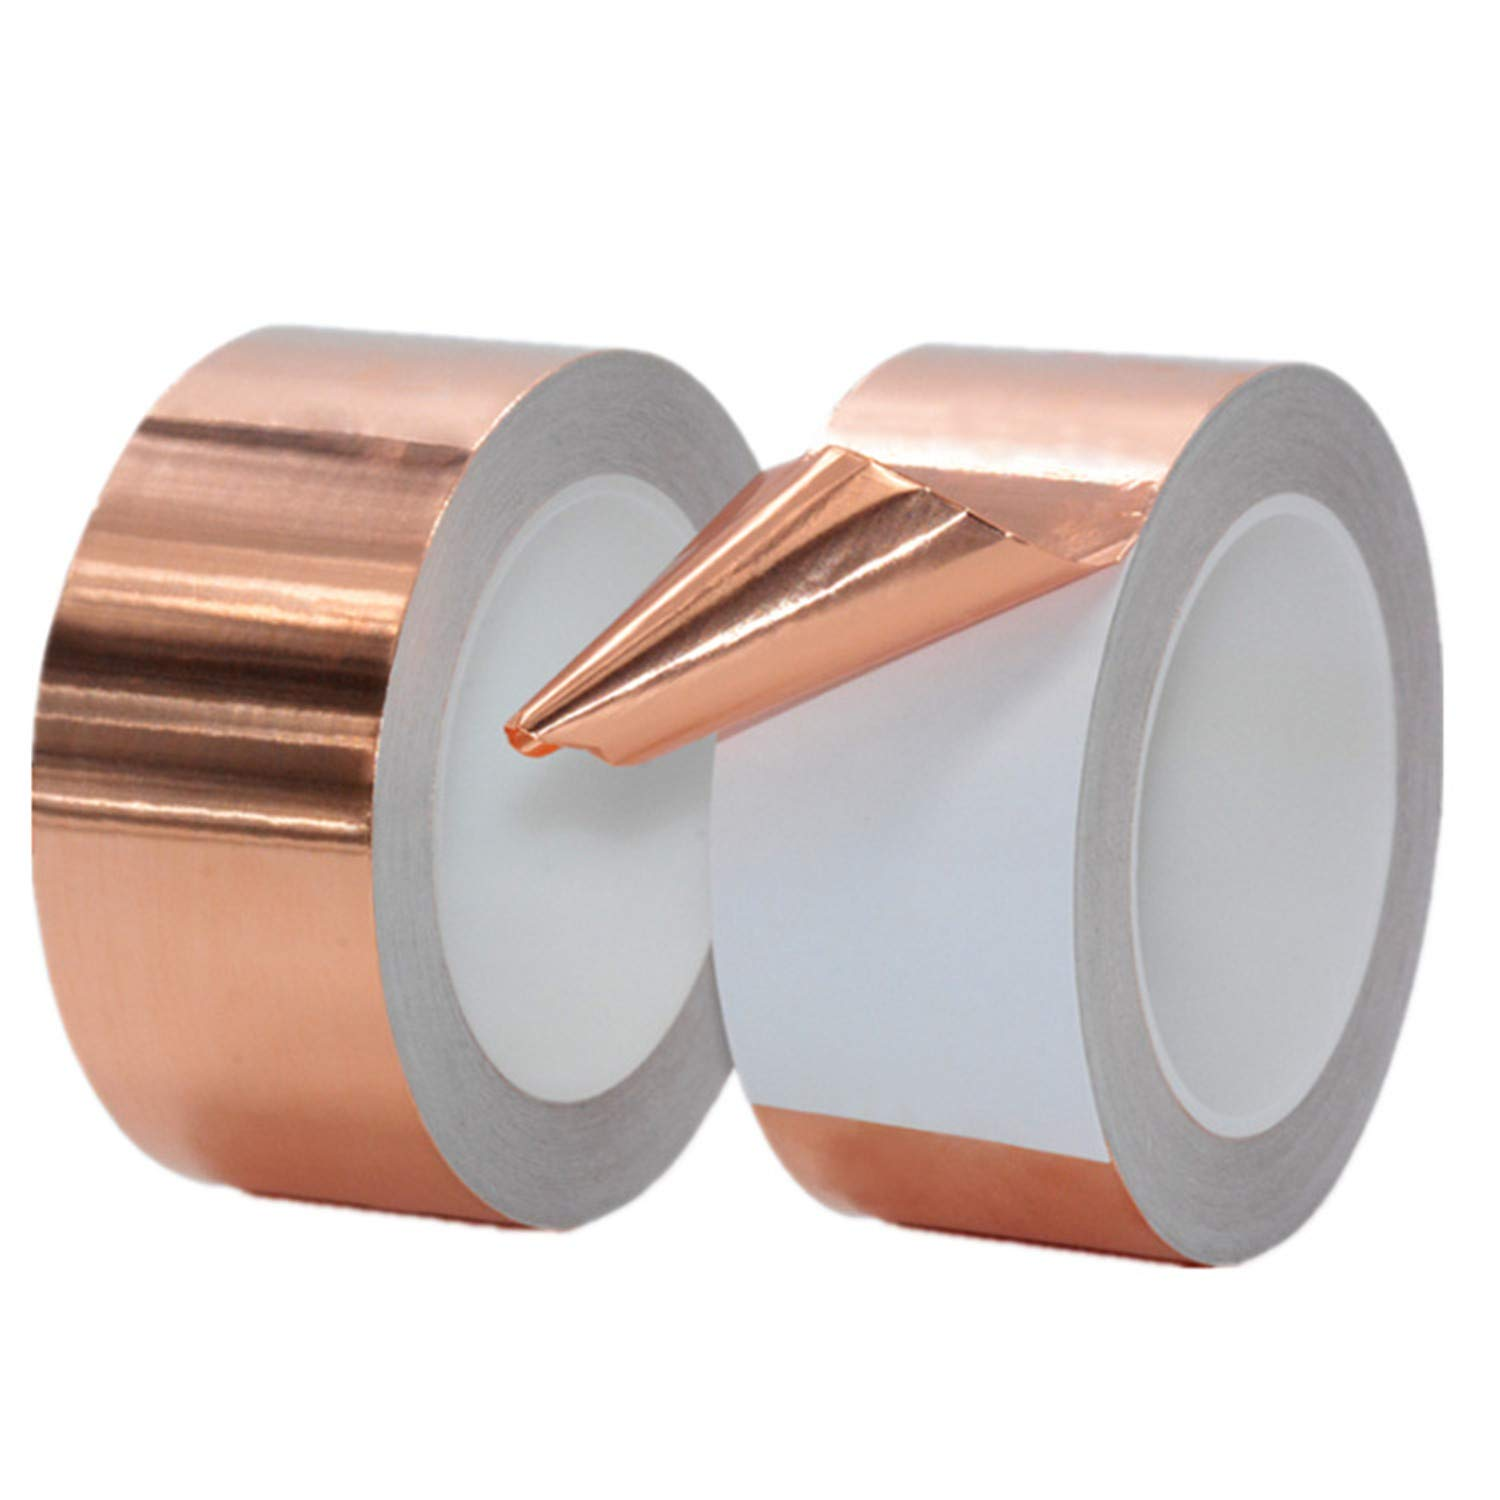 Copper Foil Tape with Single Sided Conductive Adhesive 2 Rolls (5/6/8mmx50m) - Electrical Repairs, Slug Repellent, EMI Shielding, Stained Glass, Crafts, Grounding (2-Roll,5mm x 55yard)